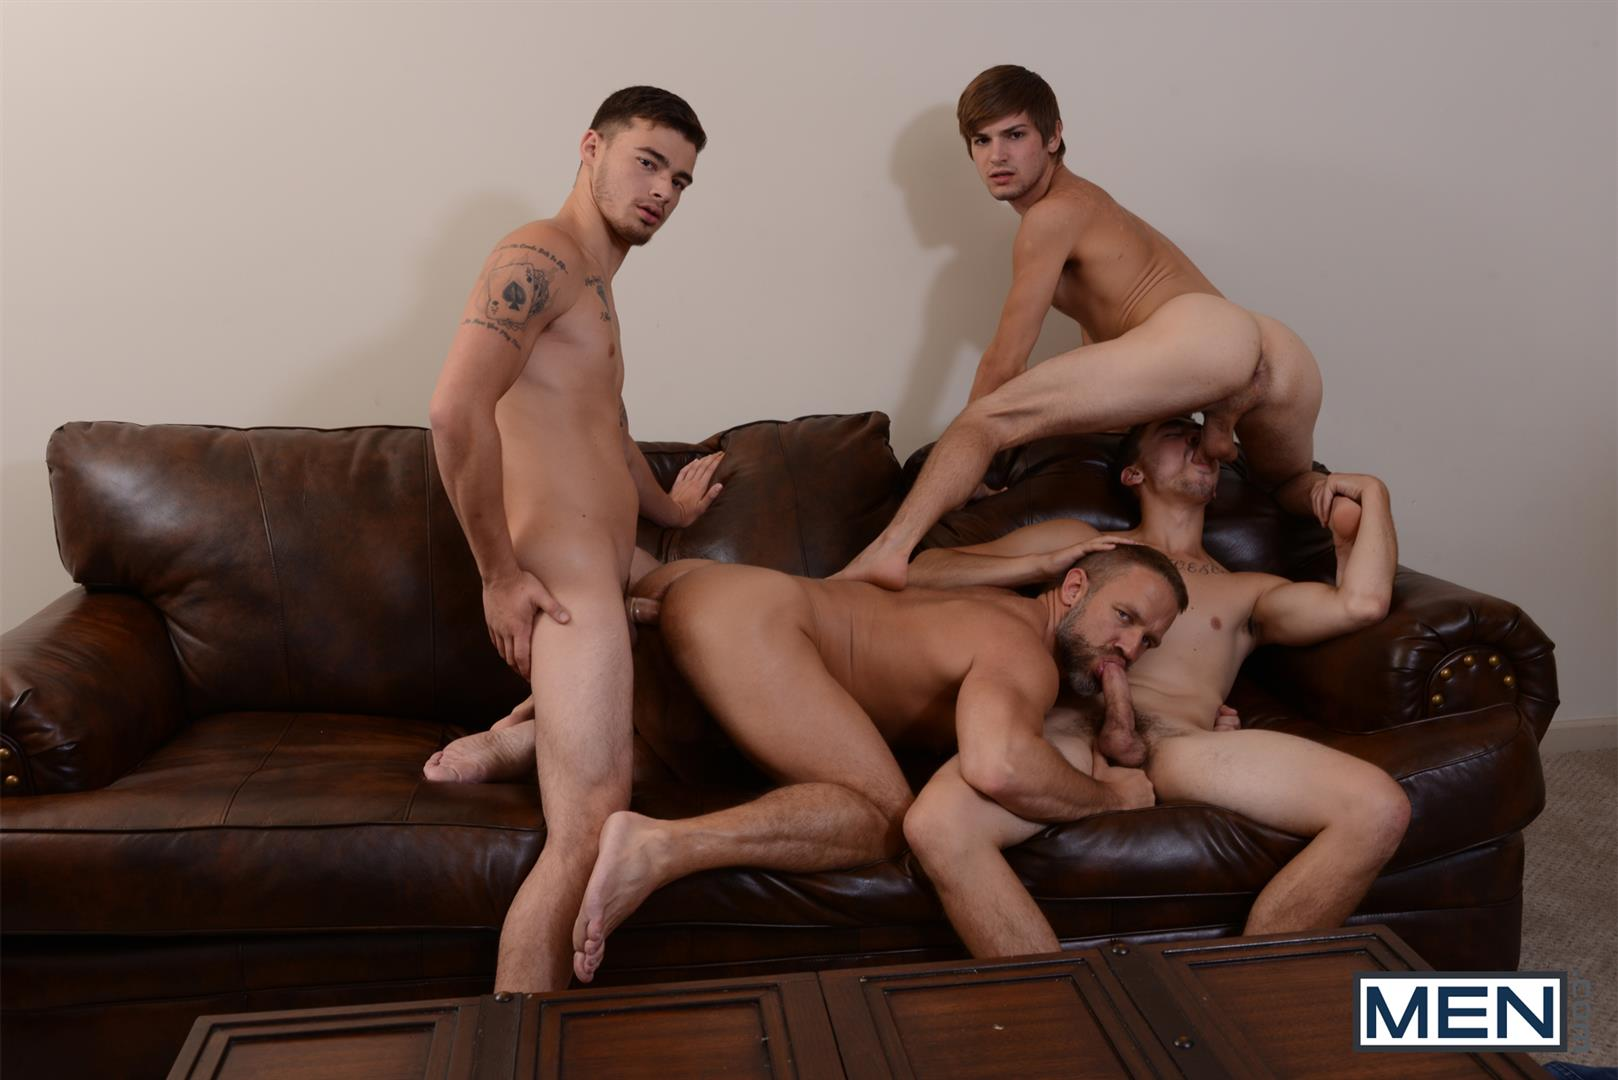 Men-Jizz-Orgy-Asher-Hawk-and-Dirk-Caber-and-Johnny-Rapid-and-Trevor-Spade-Triple-Penetrated-In-the-Ass-Amateur-Gay-Porn-17 Stepfather Dirk Caber Gets TRIPLE Penetrated By His Stepsons